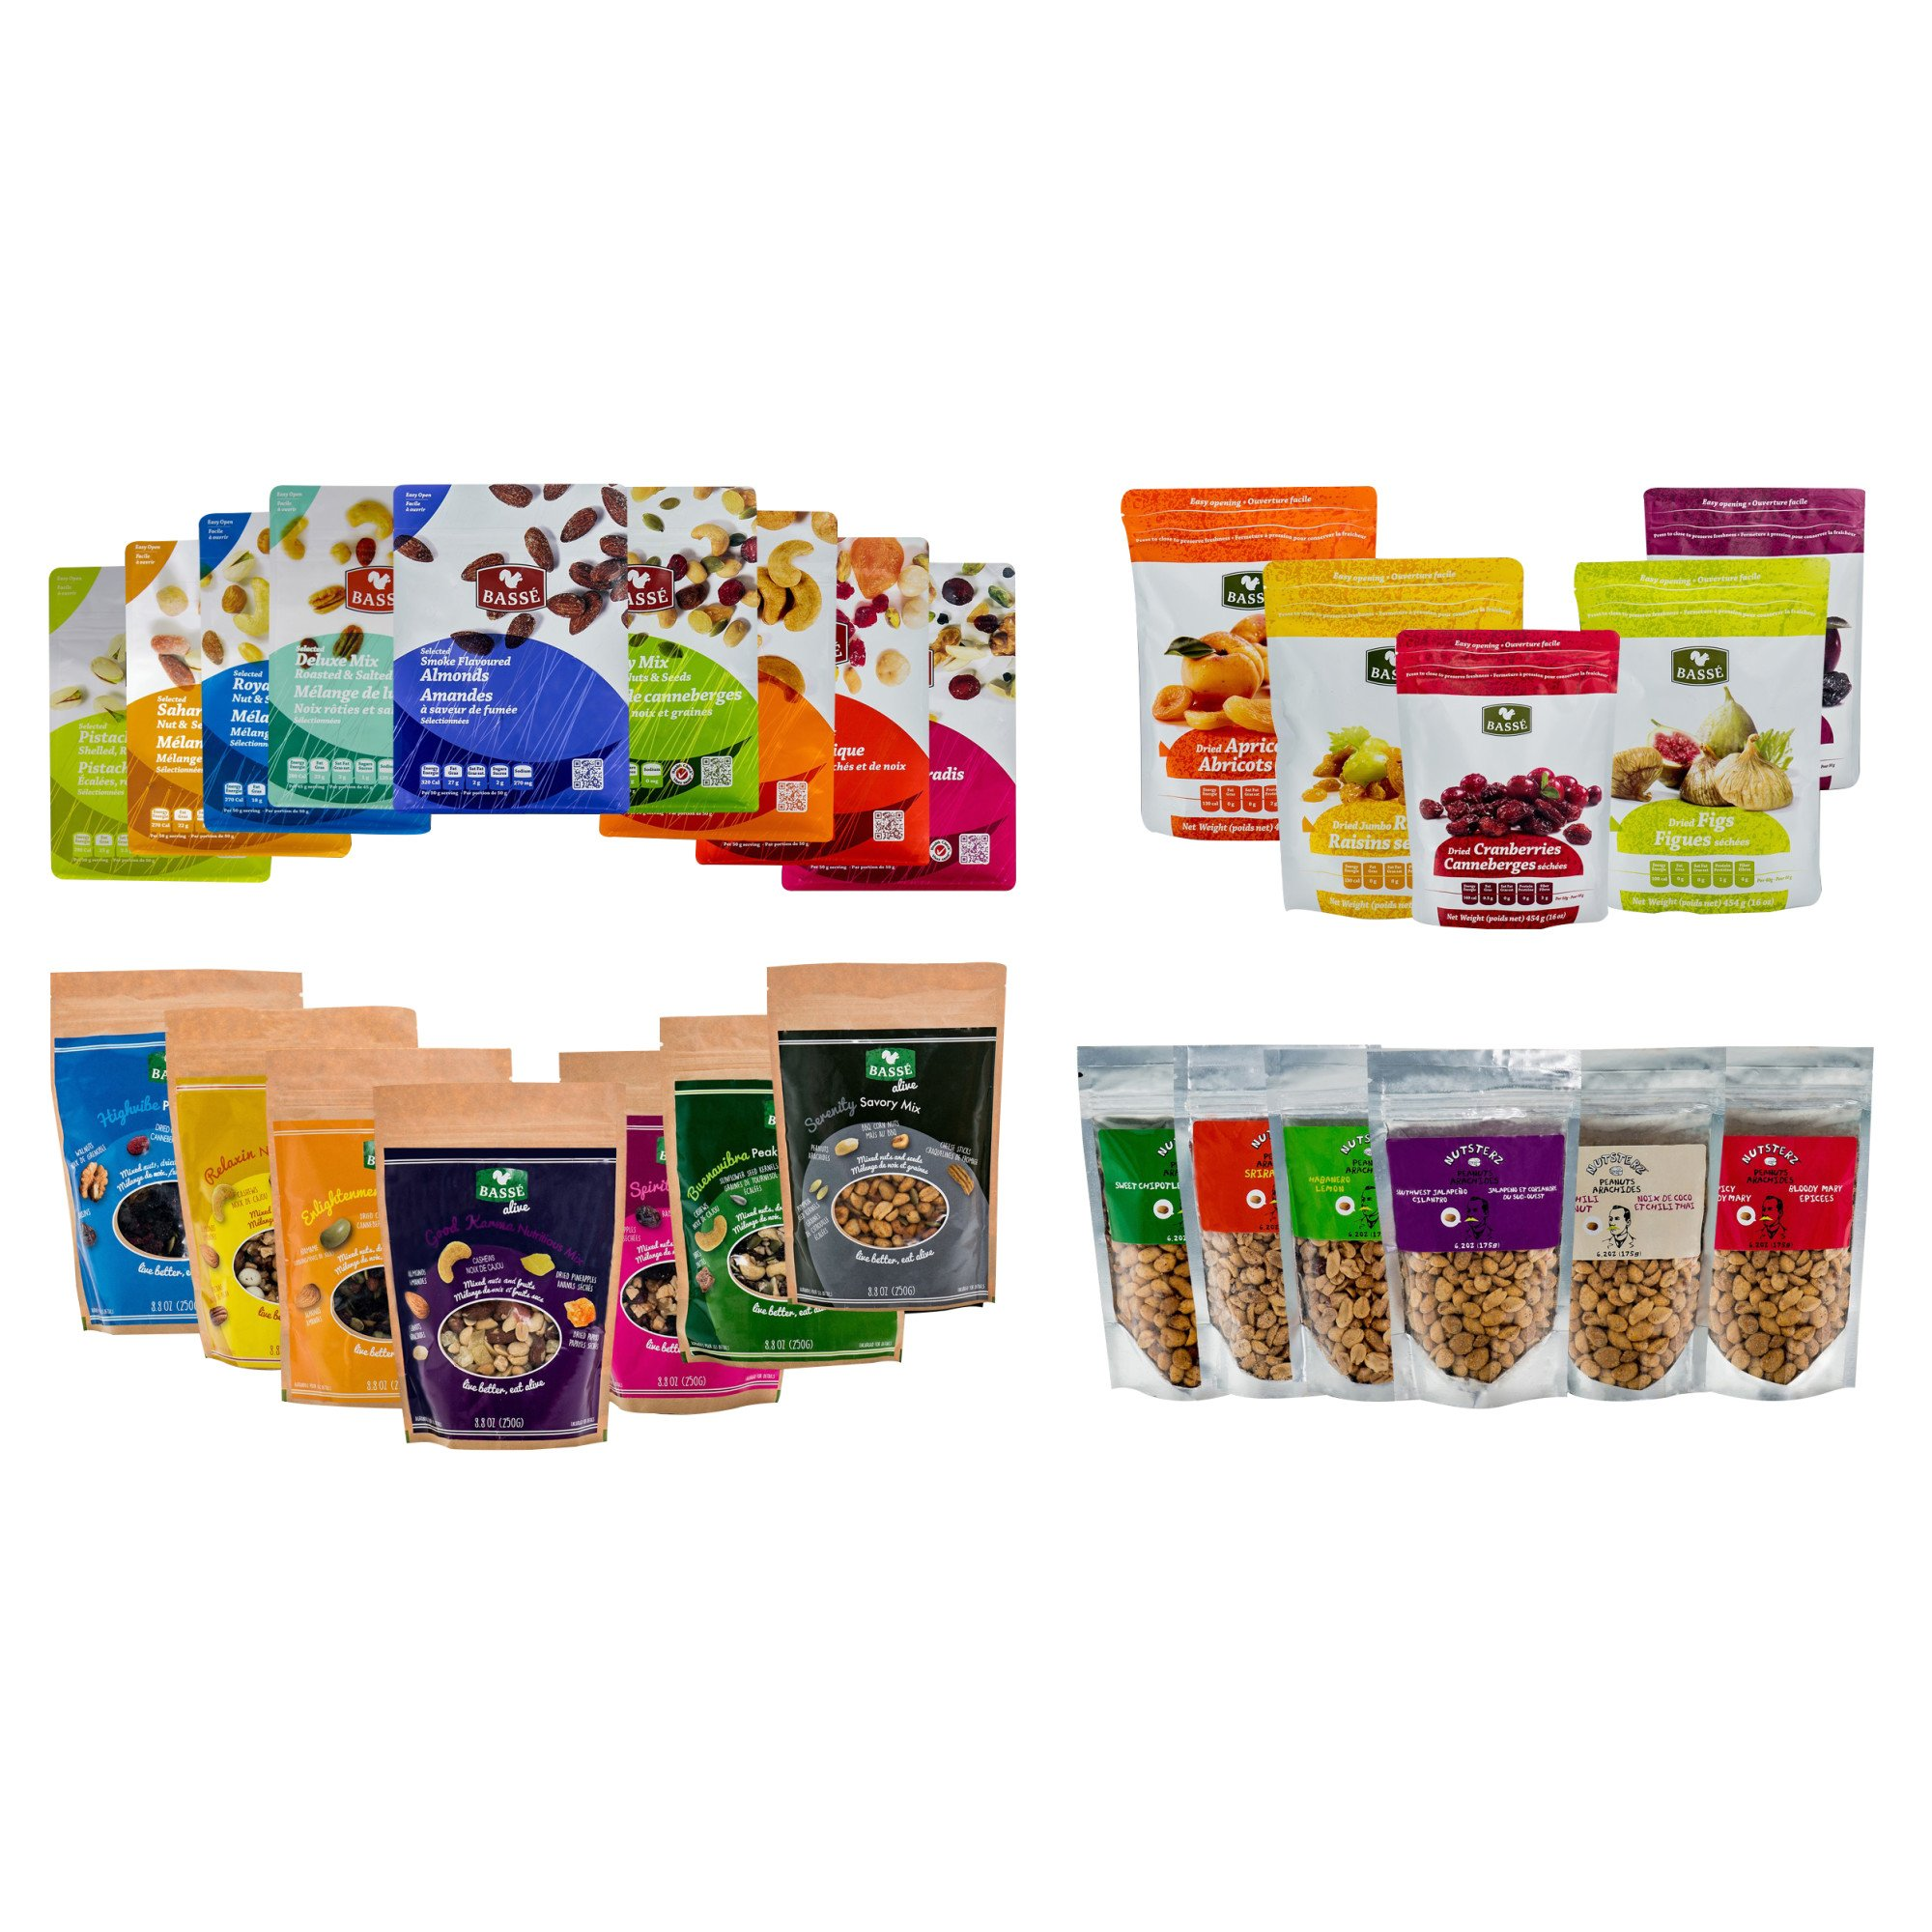 Mega Snack Pack, Over 15lbs of Dried Fruit, Trail Mixes, Nutsterz Spicy Peanuts, and Assorted Basse Nuts - Variety Pack of Superfoods and Healthy Snacks for Good Energy & Nutrition (27 Bags Total)